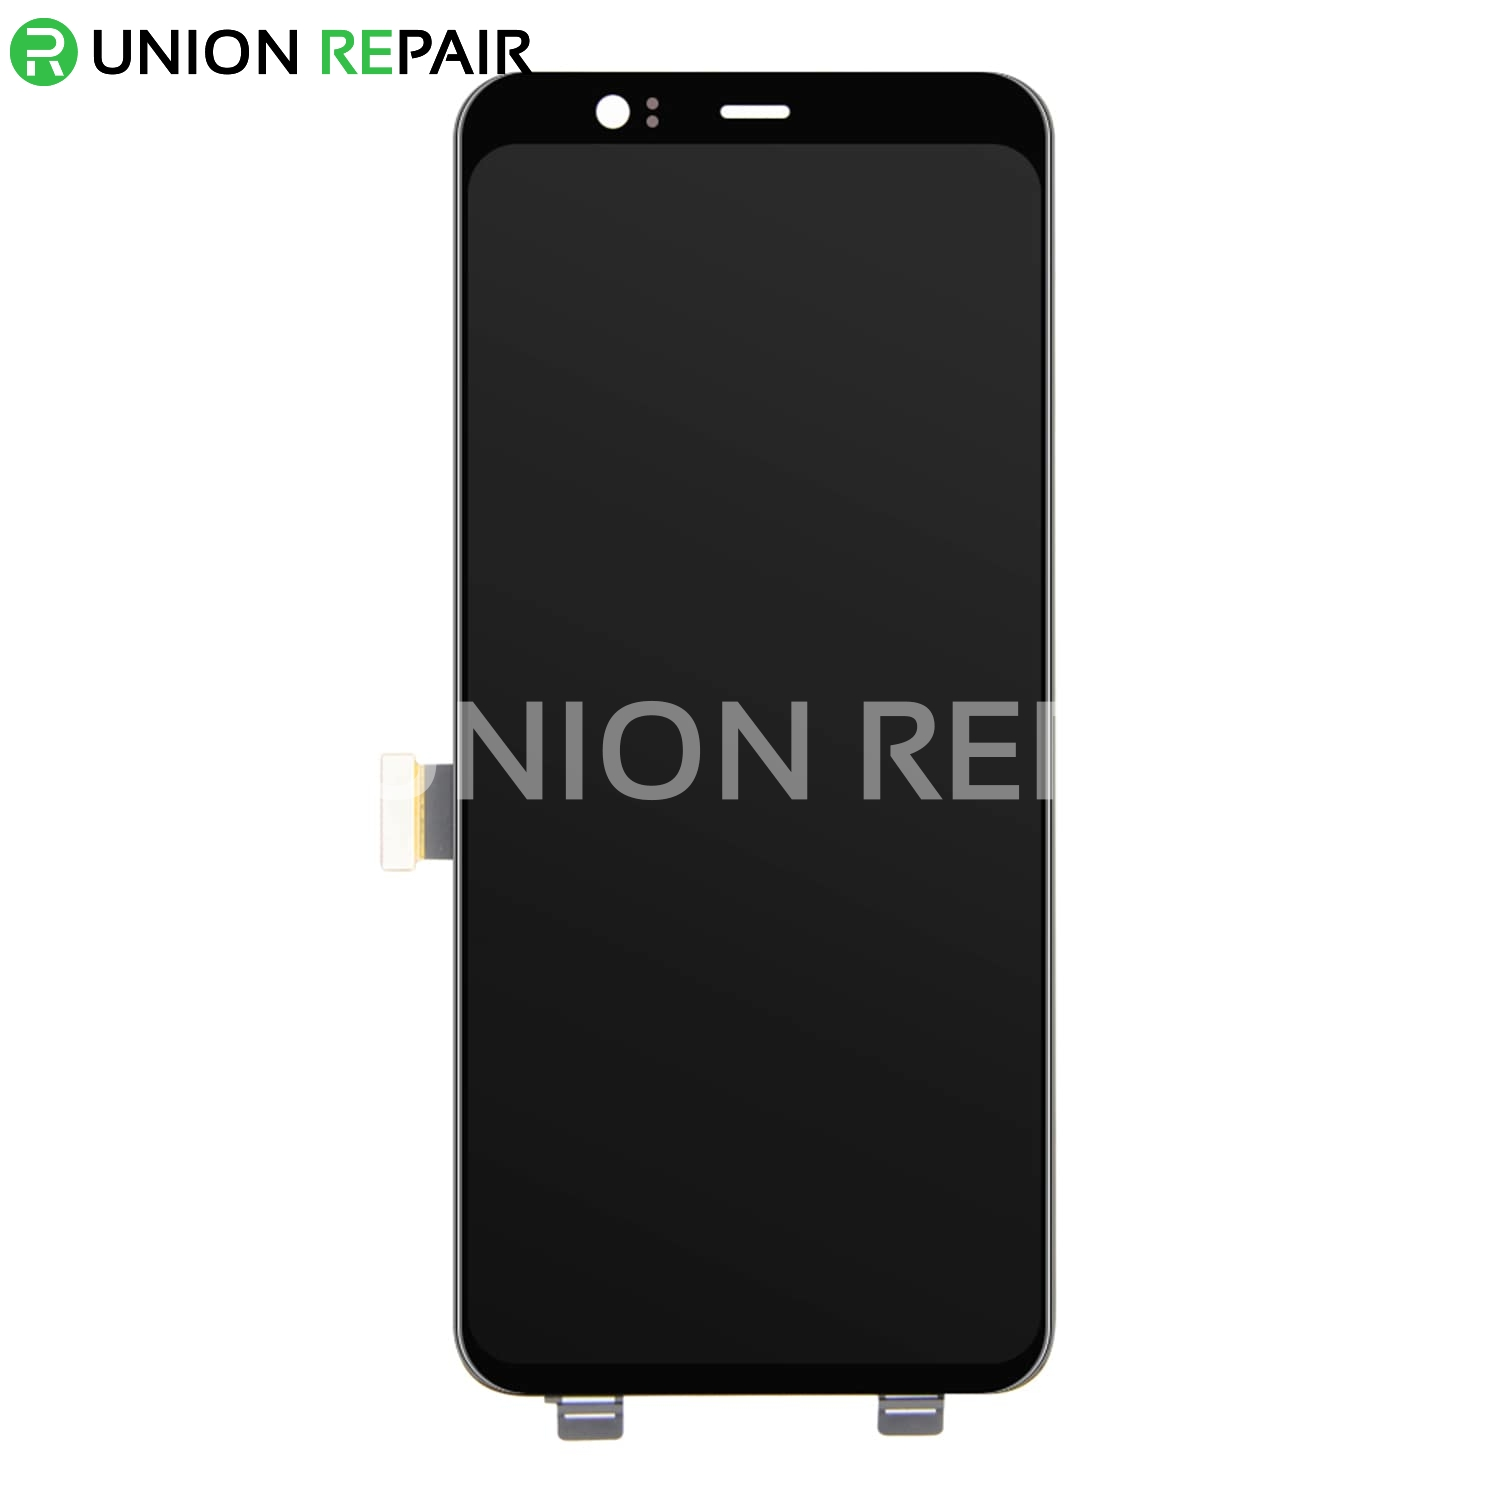 Replacement for Google Pixel 4 XL LCD Screen with Digitizer Assembly - Black